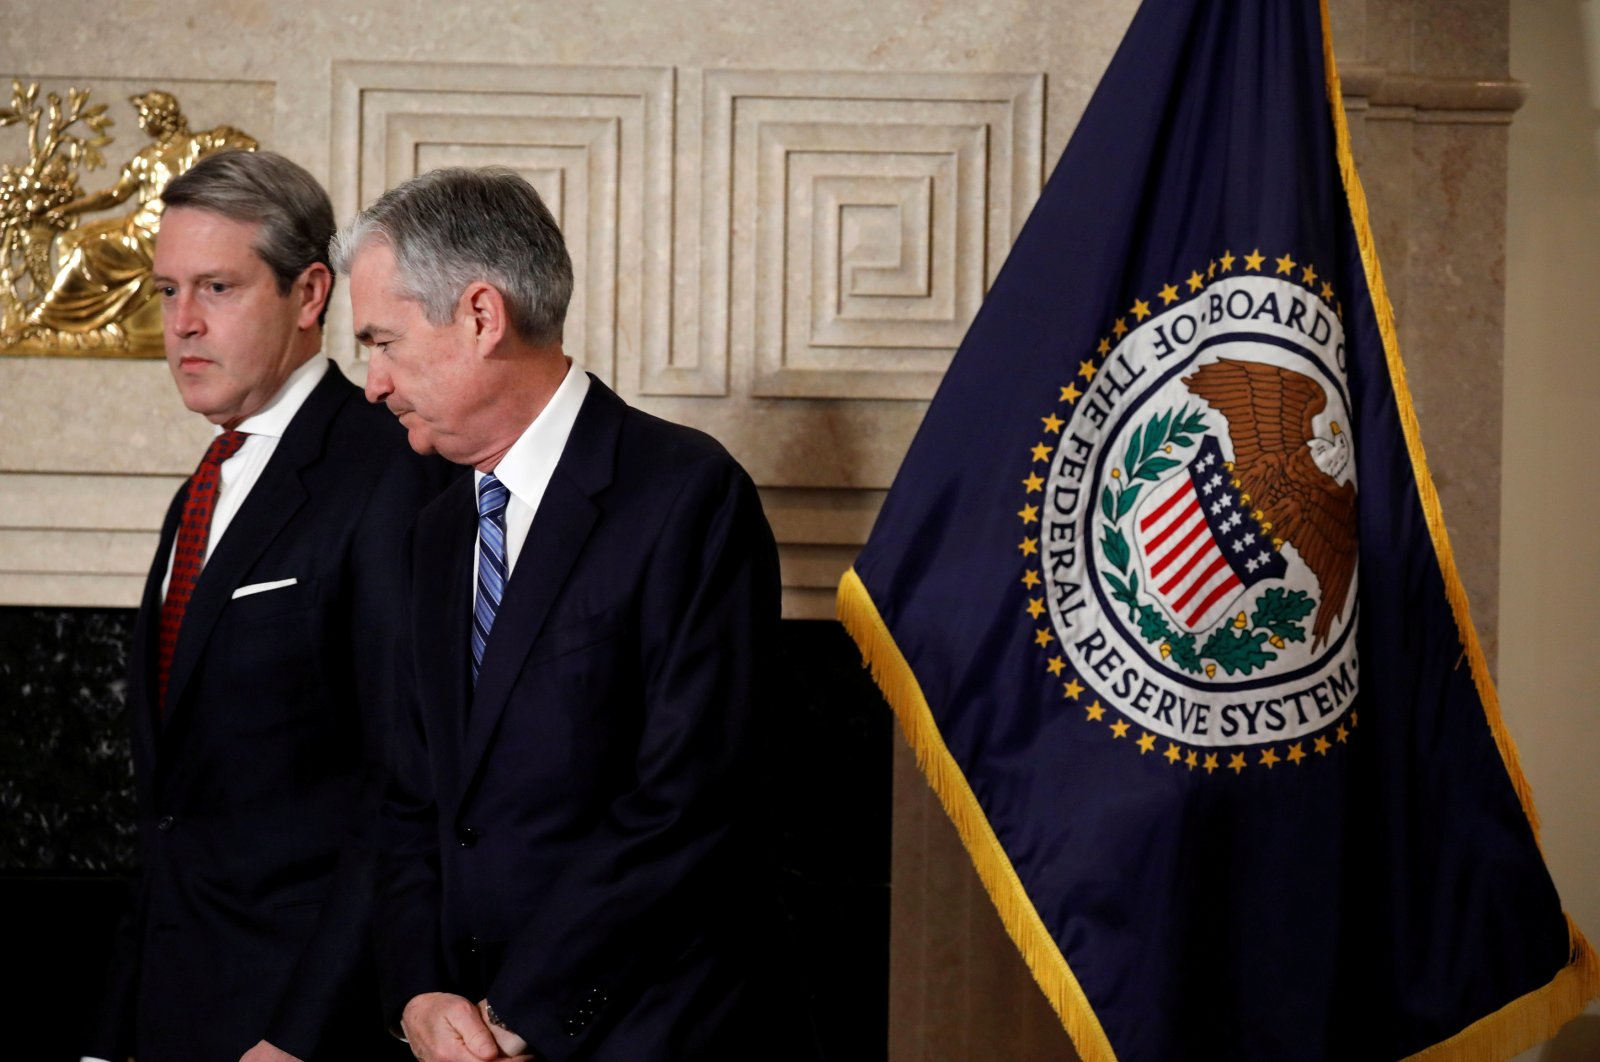 Randal Quarles (L), Federal Reserve board member and vice chair for supervision, arrives to swear in Chair Jerome Powell at the Fed in Washington, U.S., Feb. 5, 2018. (Reuters Photo)